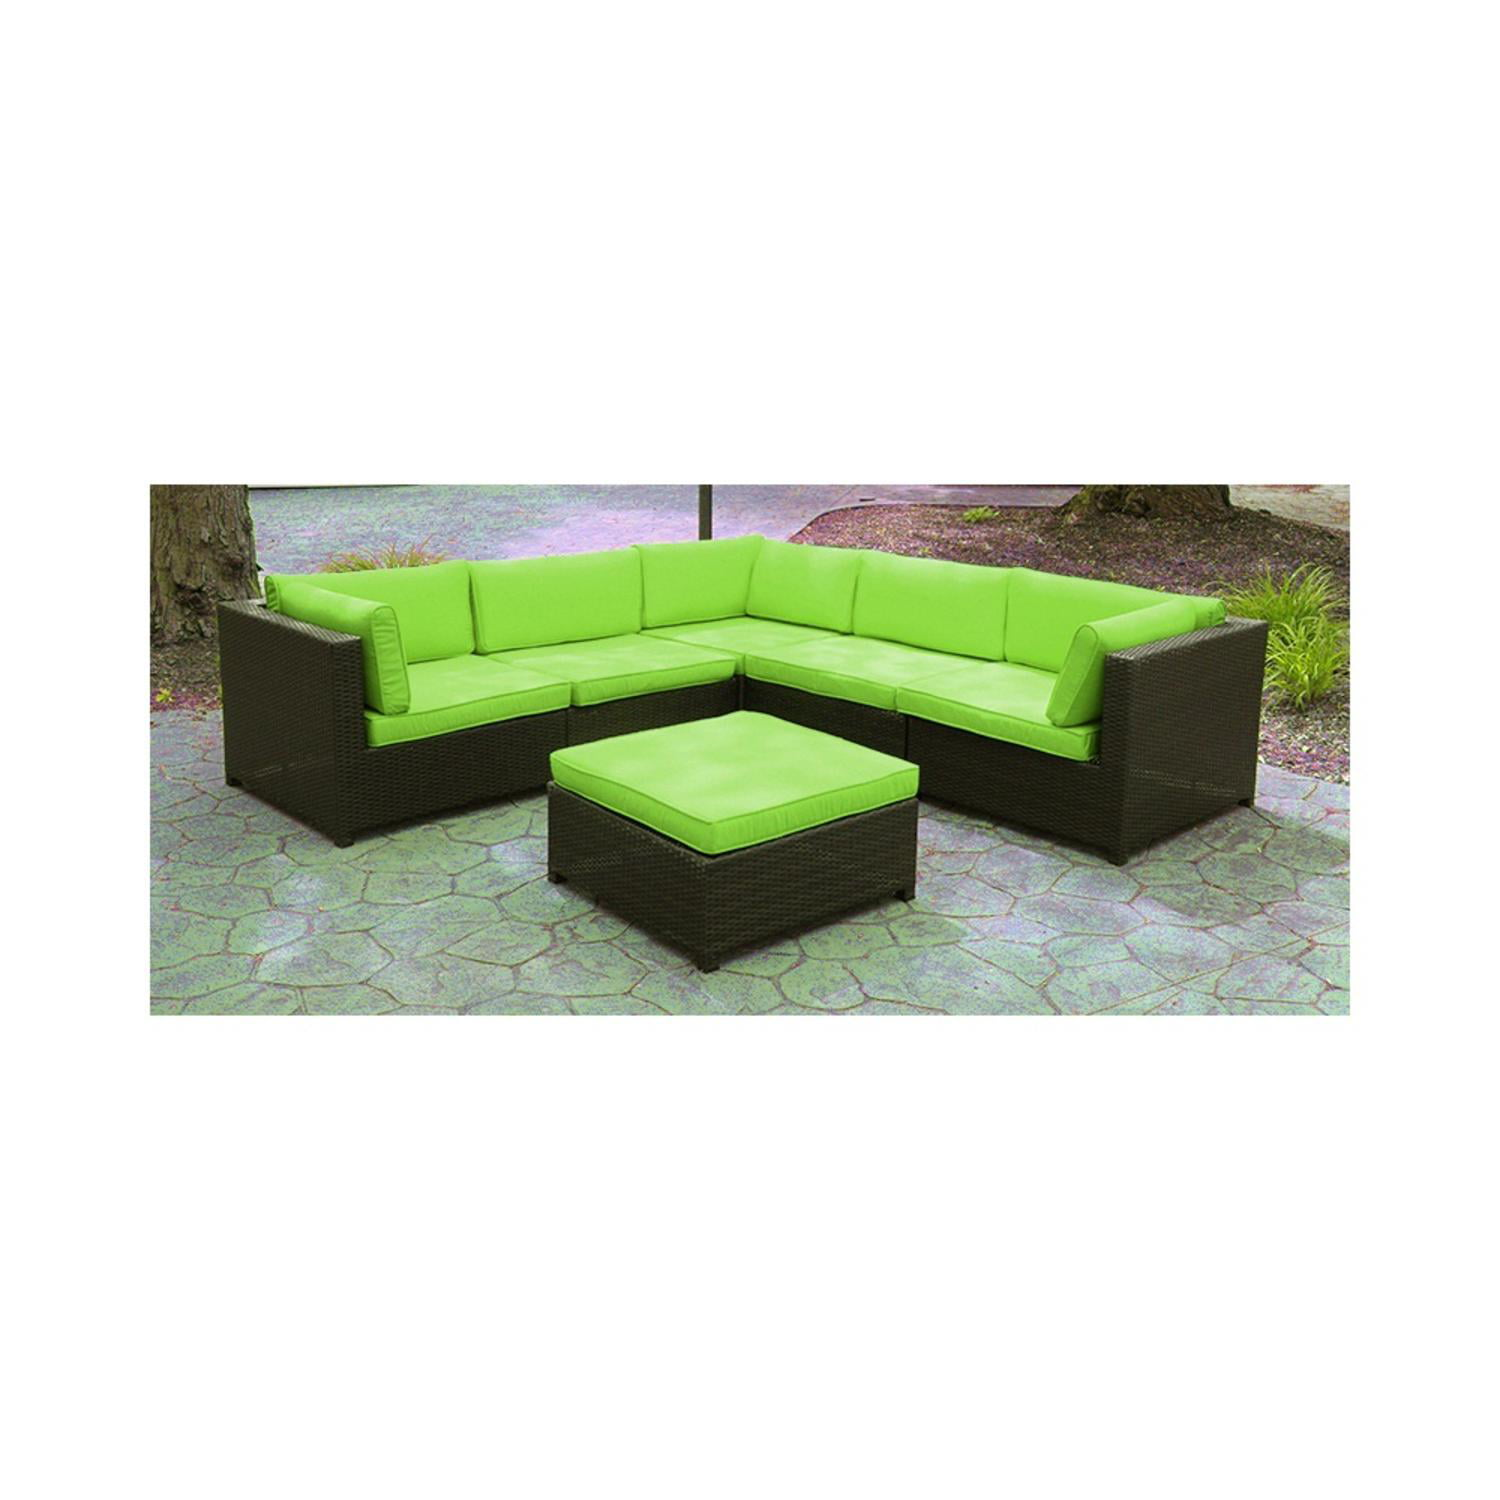 Black Resin Wicker Outdoor Furniture Sectional Sofa Set Lime Green Cushions by Resin Furniture